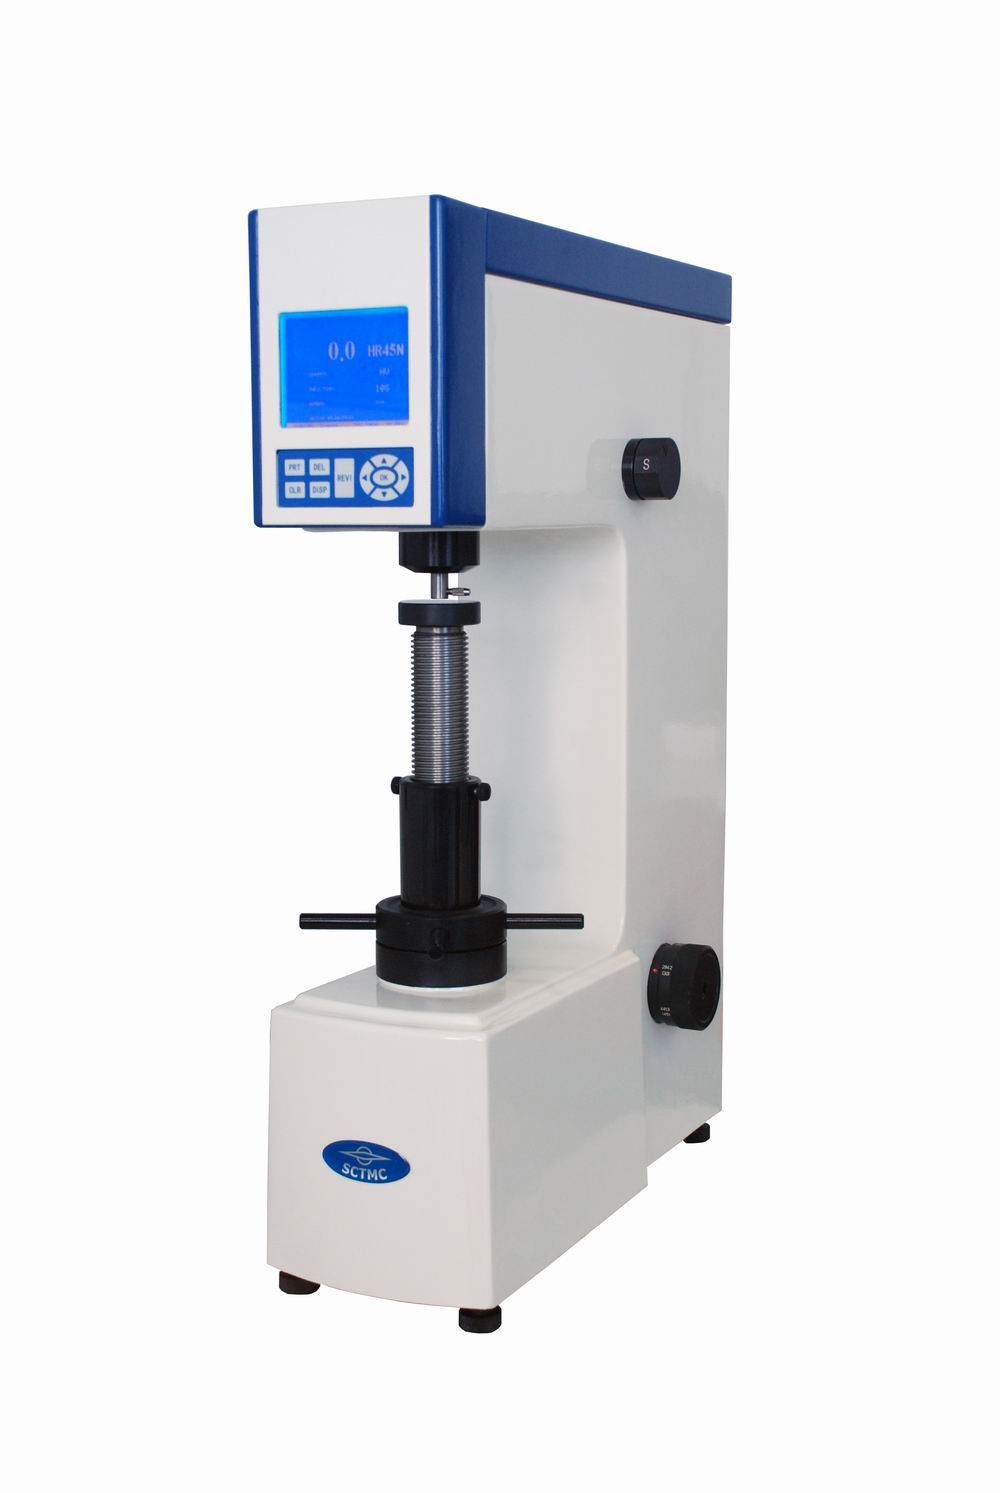 Digital Double Rockwell Hardness Tester